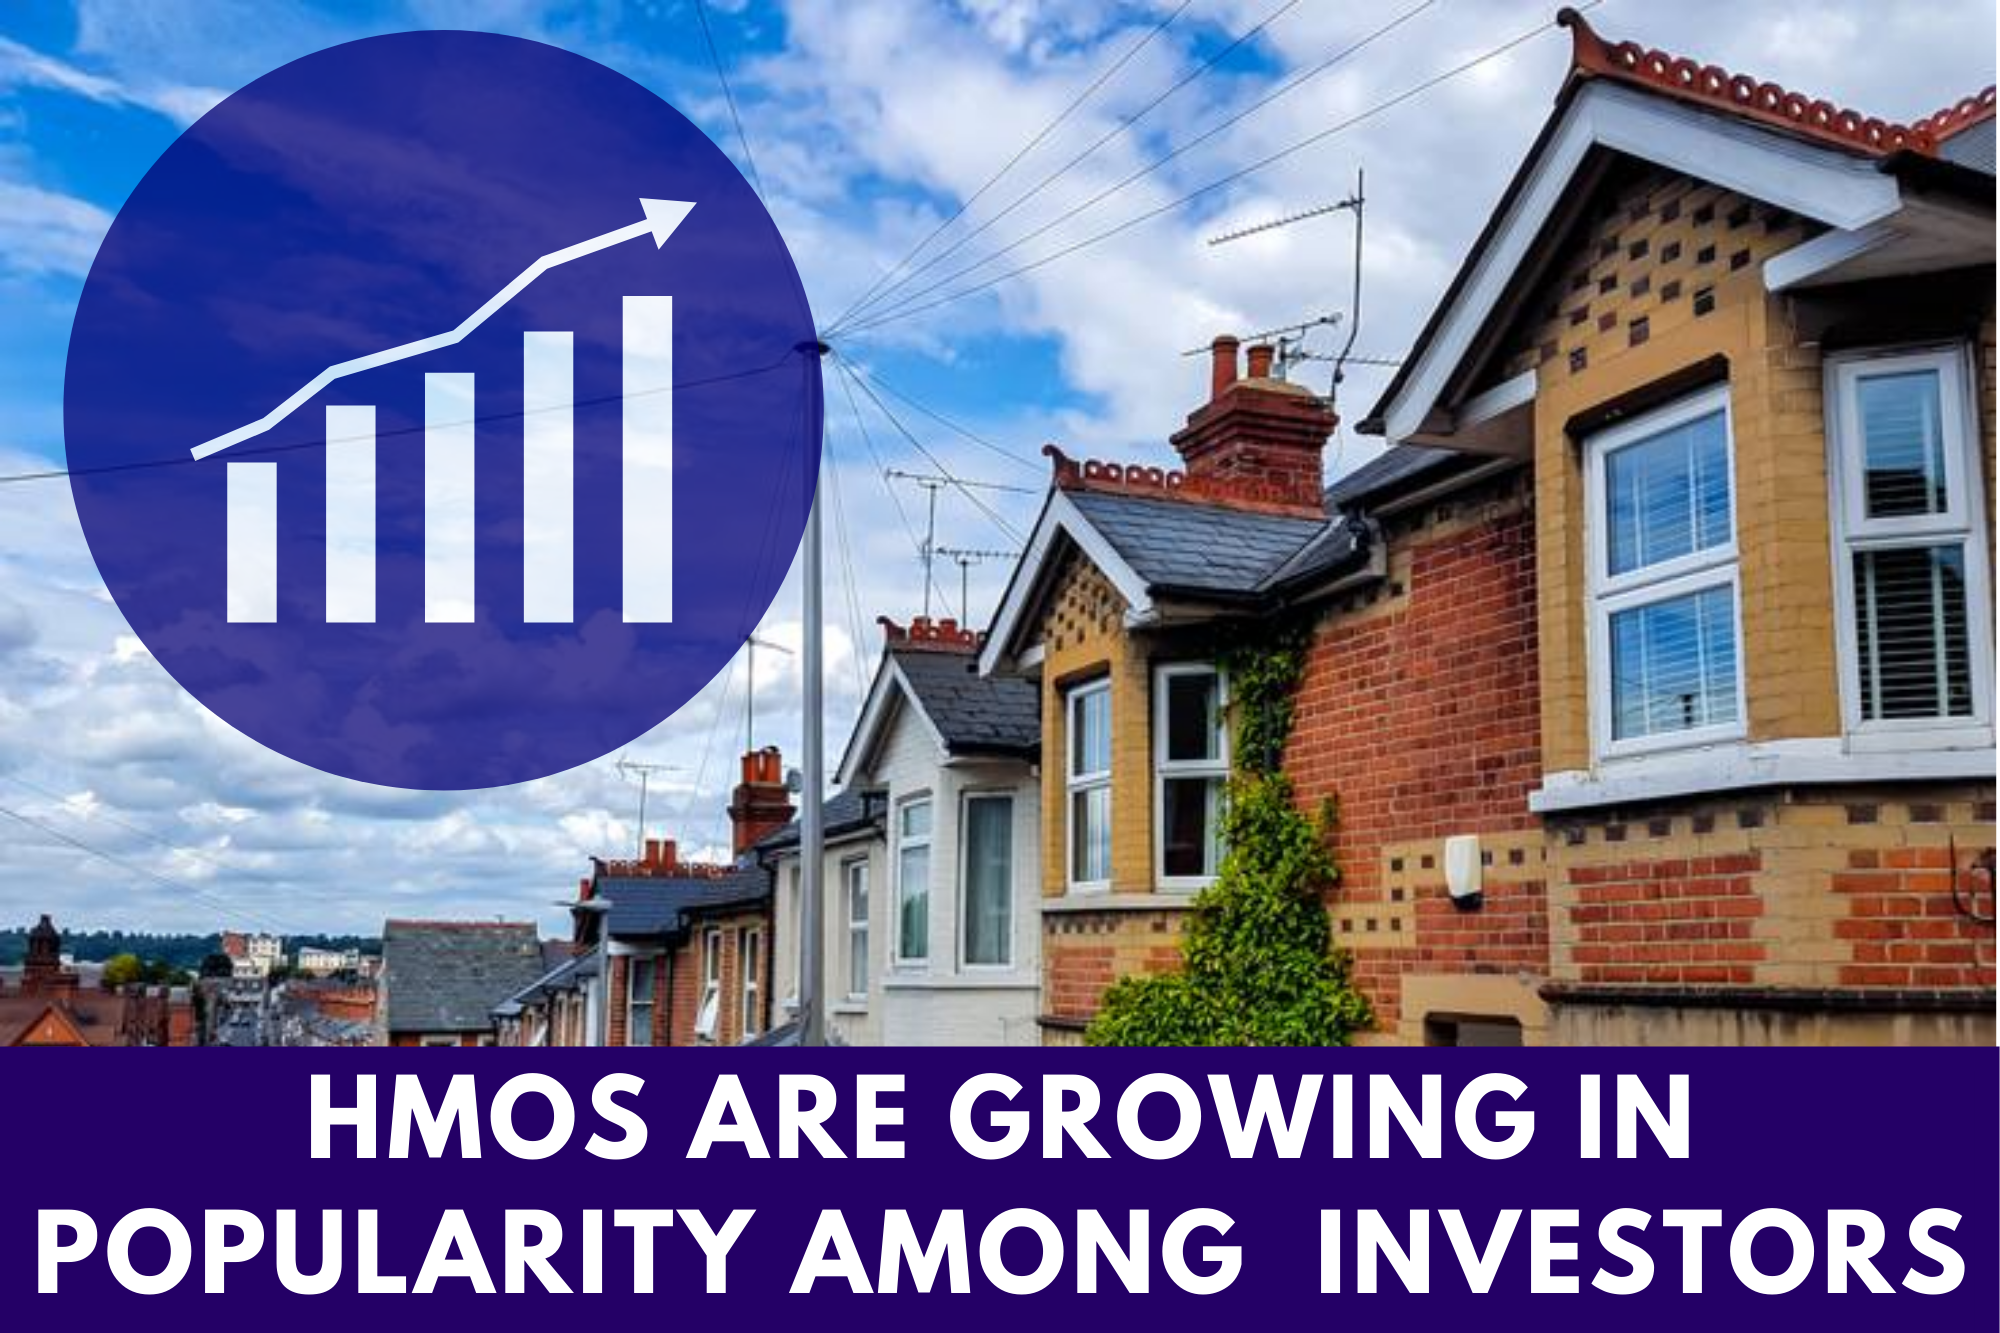 hmos are growing in popularity among investors